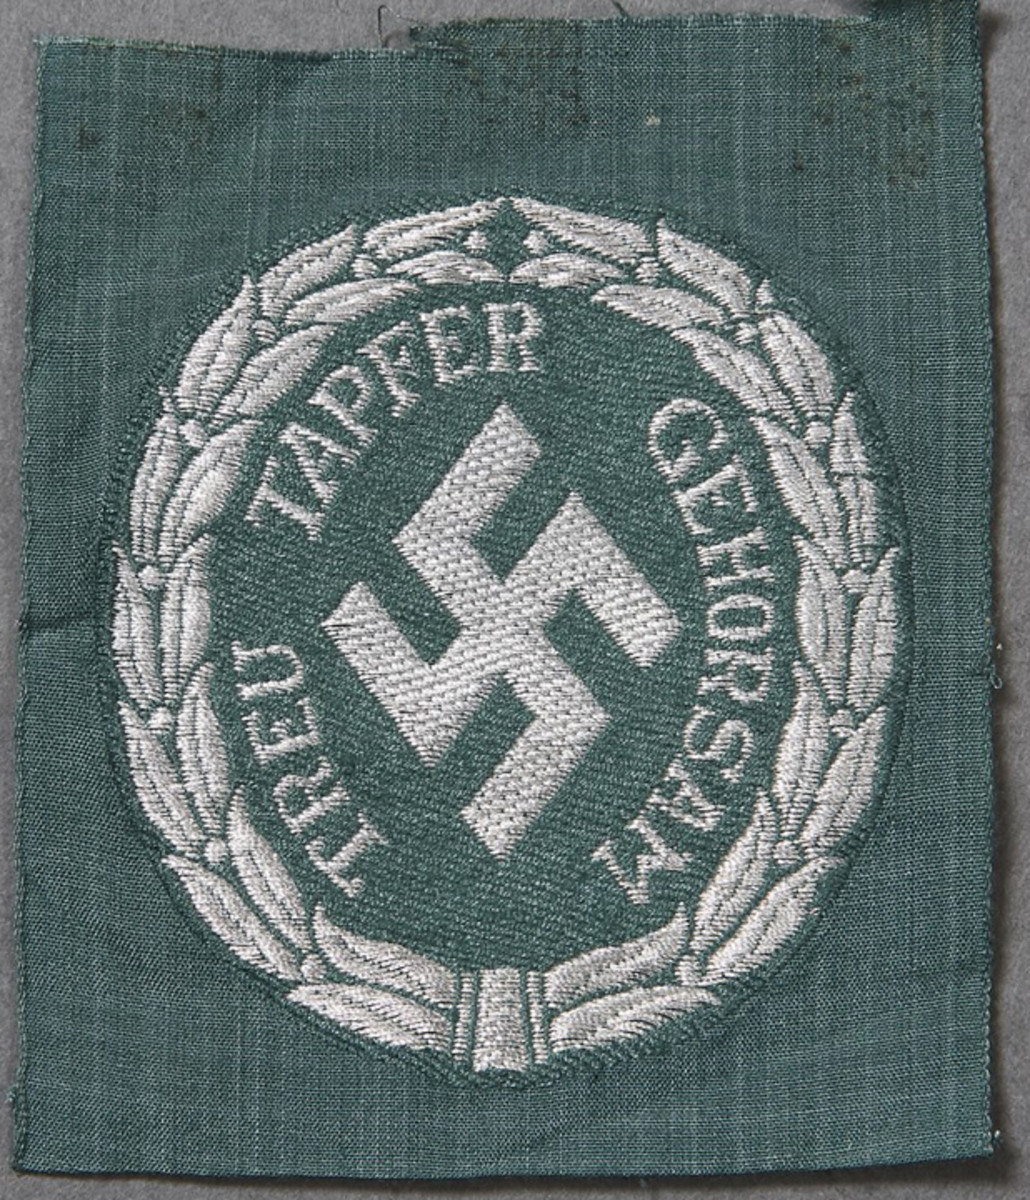 A German Schutzmannschaft (Schuma) Auxiliary Police sleeve shield. This type of police patch is BeVo machine woven in silver flat wire on blue green cloth. The design is of a wreath and diamond shaped swastika with the words Treu/Loyal, Tapfer/Brave and Gehorsam/Obedience. This type of German WWII police patch retails for around $150-$200.